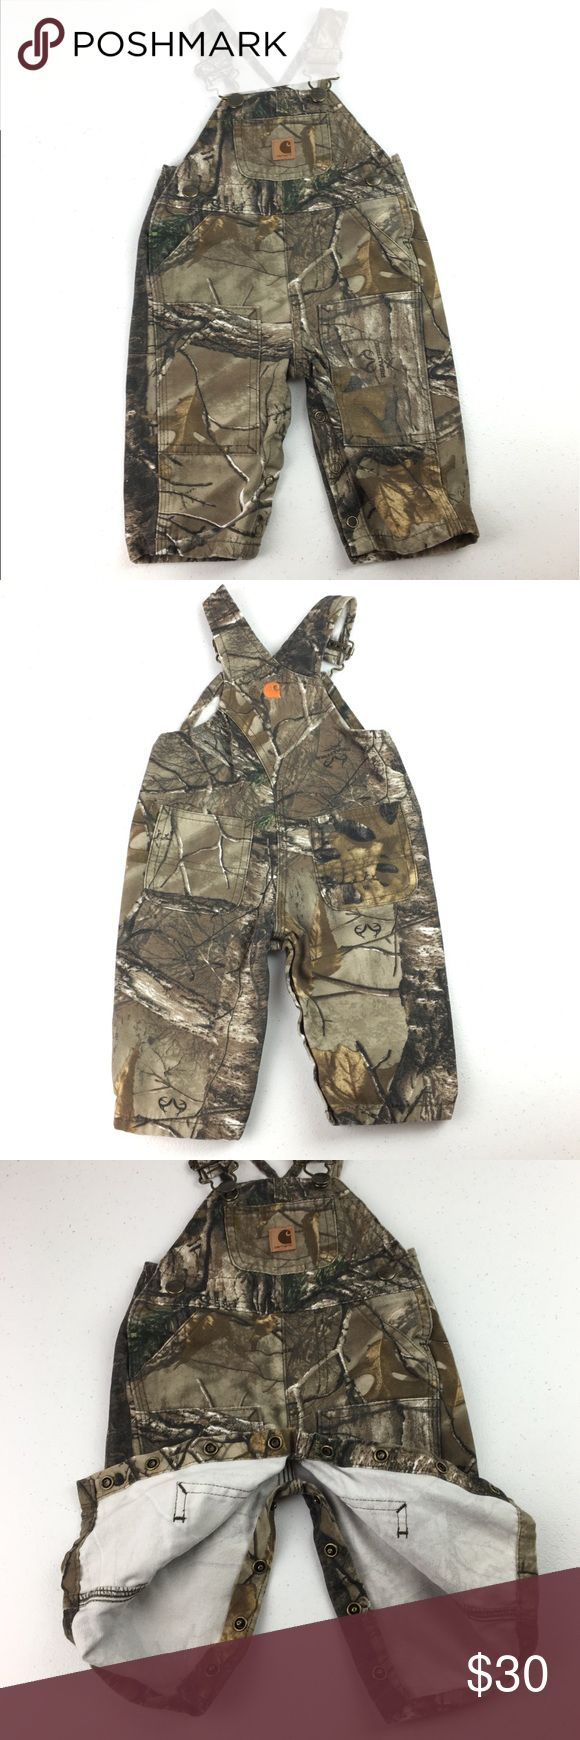 Carhartt Real Tree Camo Bib Overalls 3 Month 3 Month Real Tree camouflage Carhartt overalls. Adjustable straps. 100% cotton. Great pre-owned condition. Carhartt Bottoms Overalls